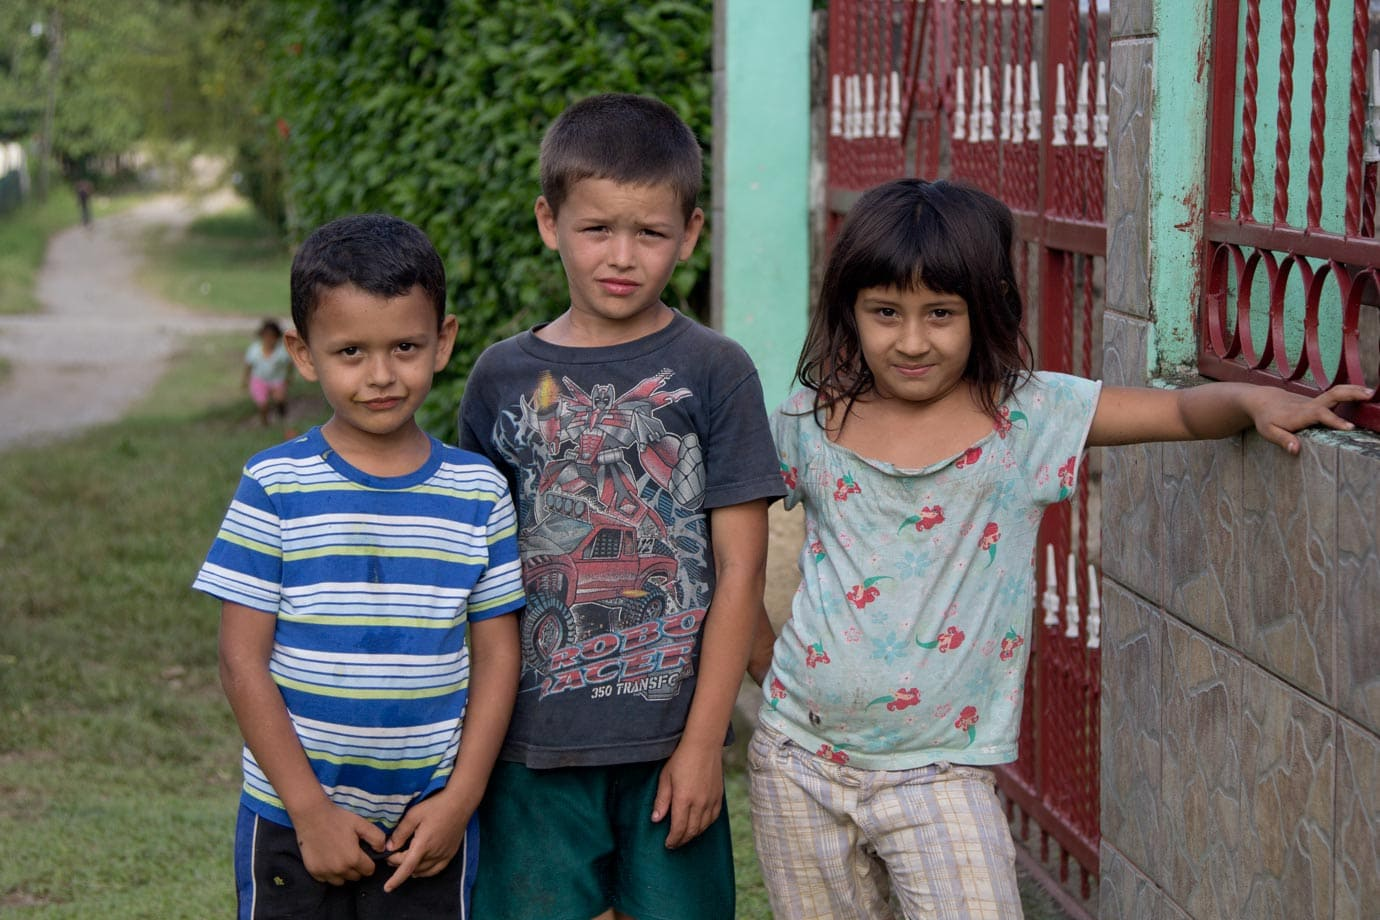 Some neighbourhood kids who were keen to be photographed